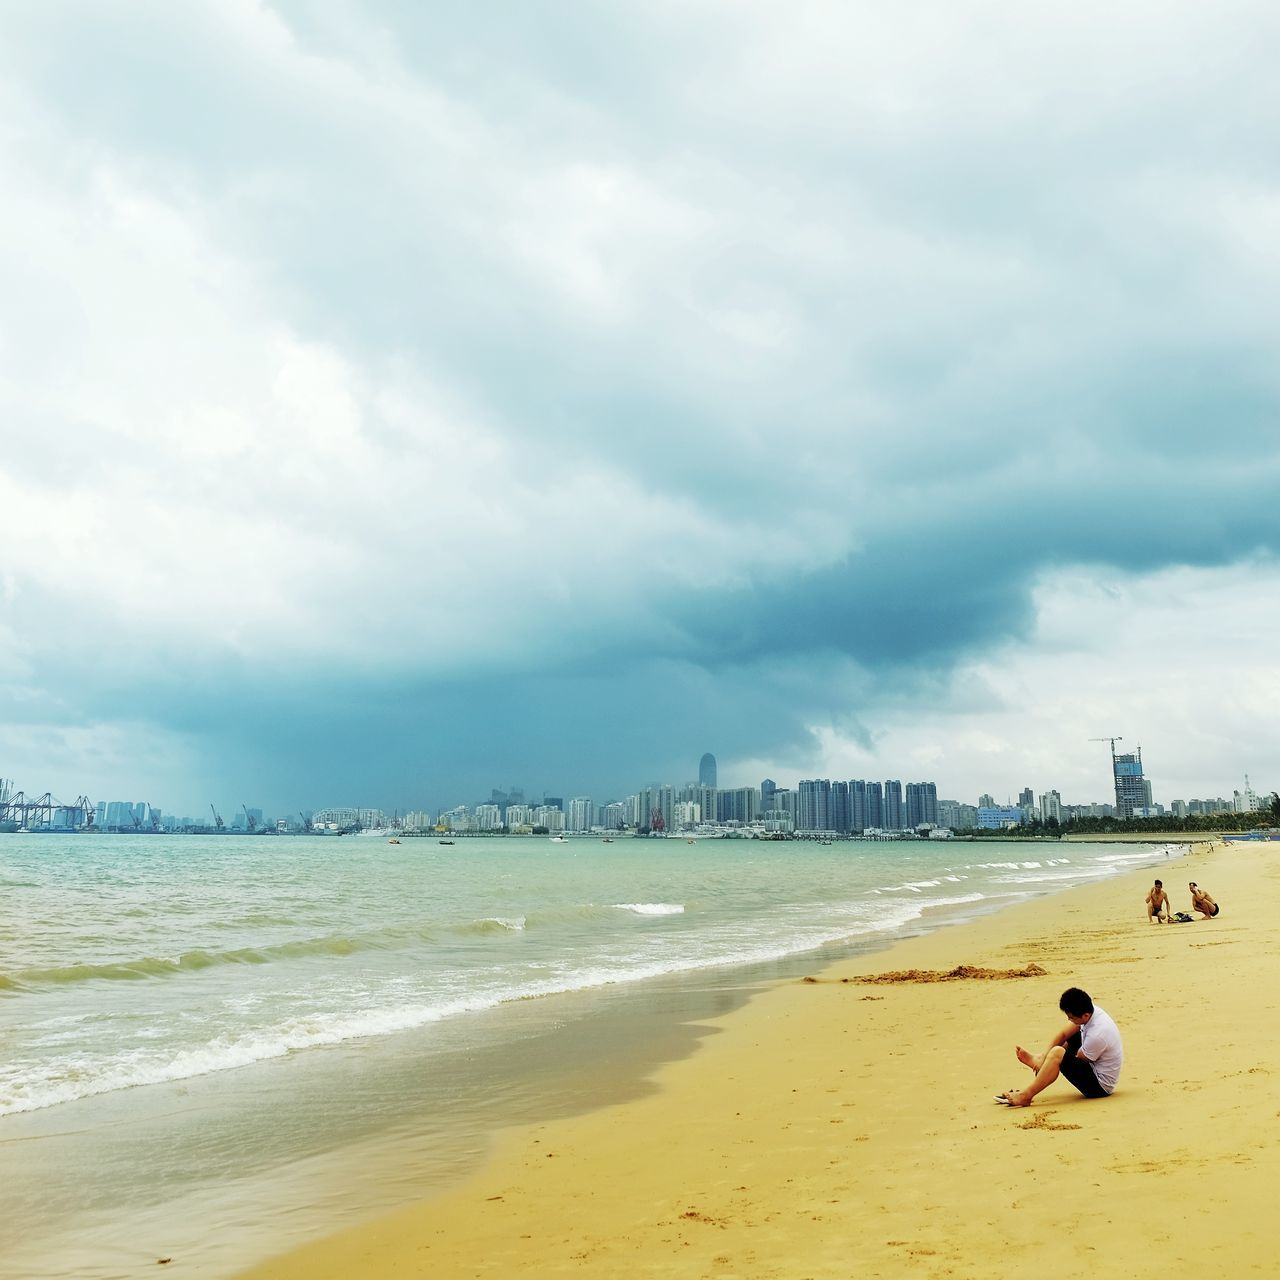 beach, land, water, sea, sky, cloud - sky, sand, one person, beauty in nature, nature, real people, day, leisure activity, scenics - nature, architecture, relaxation, built structure, men, outdoors